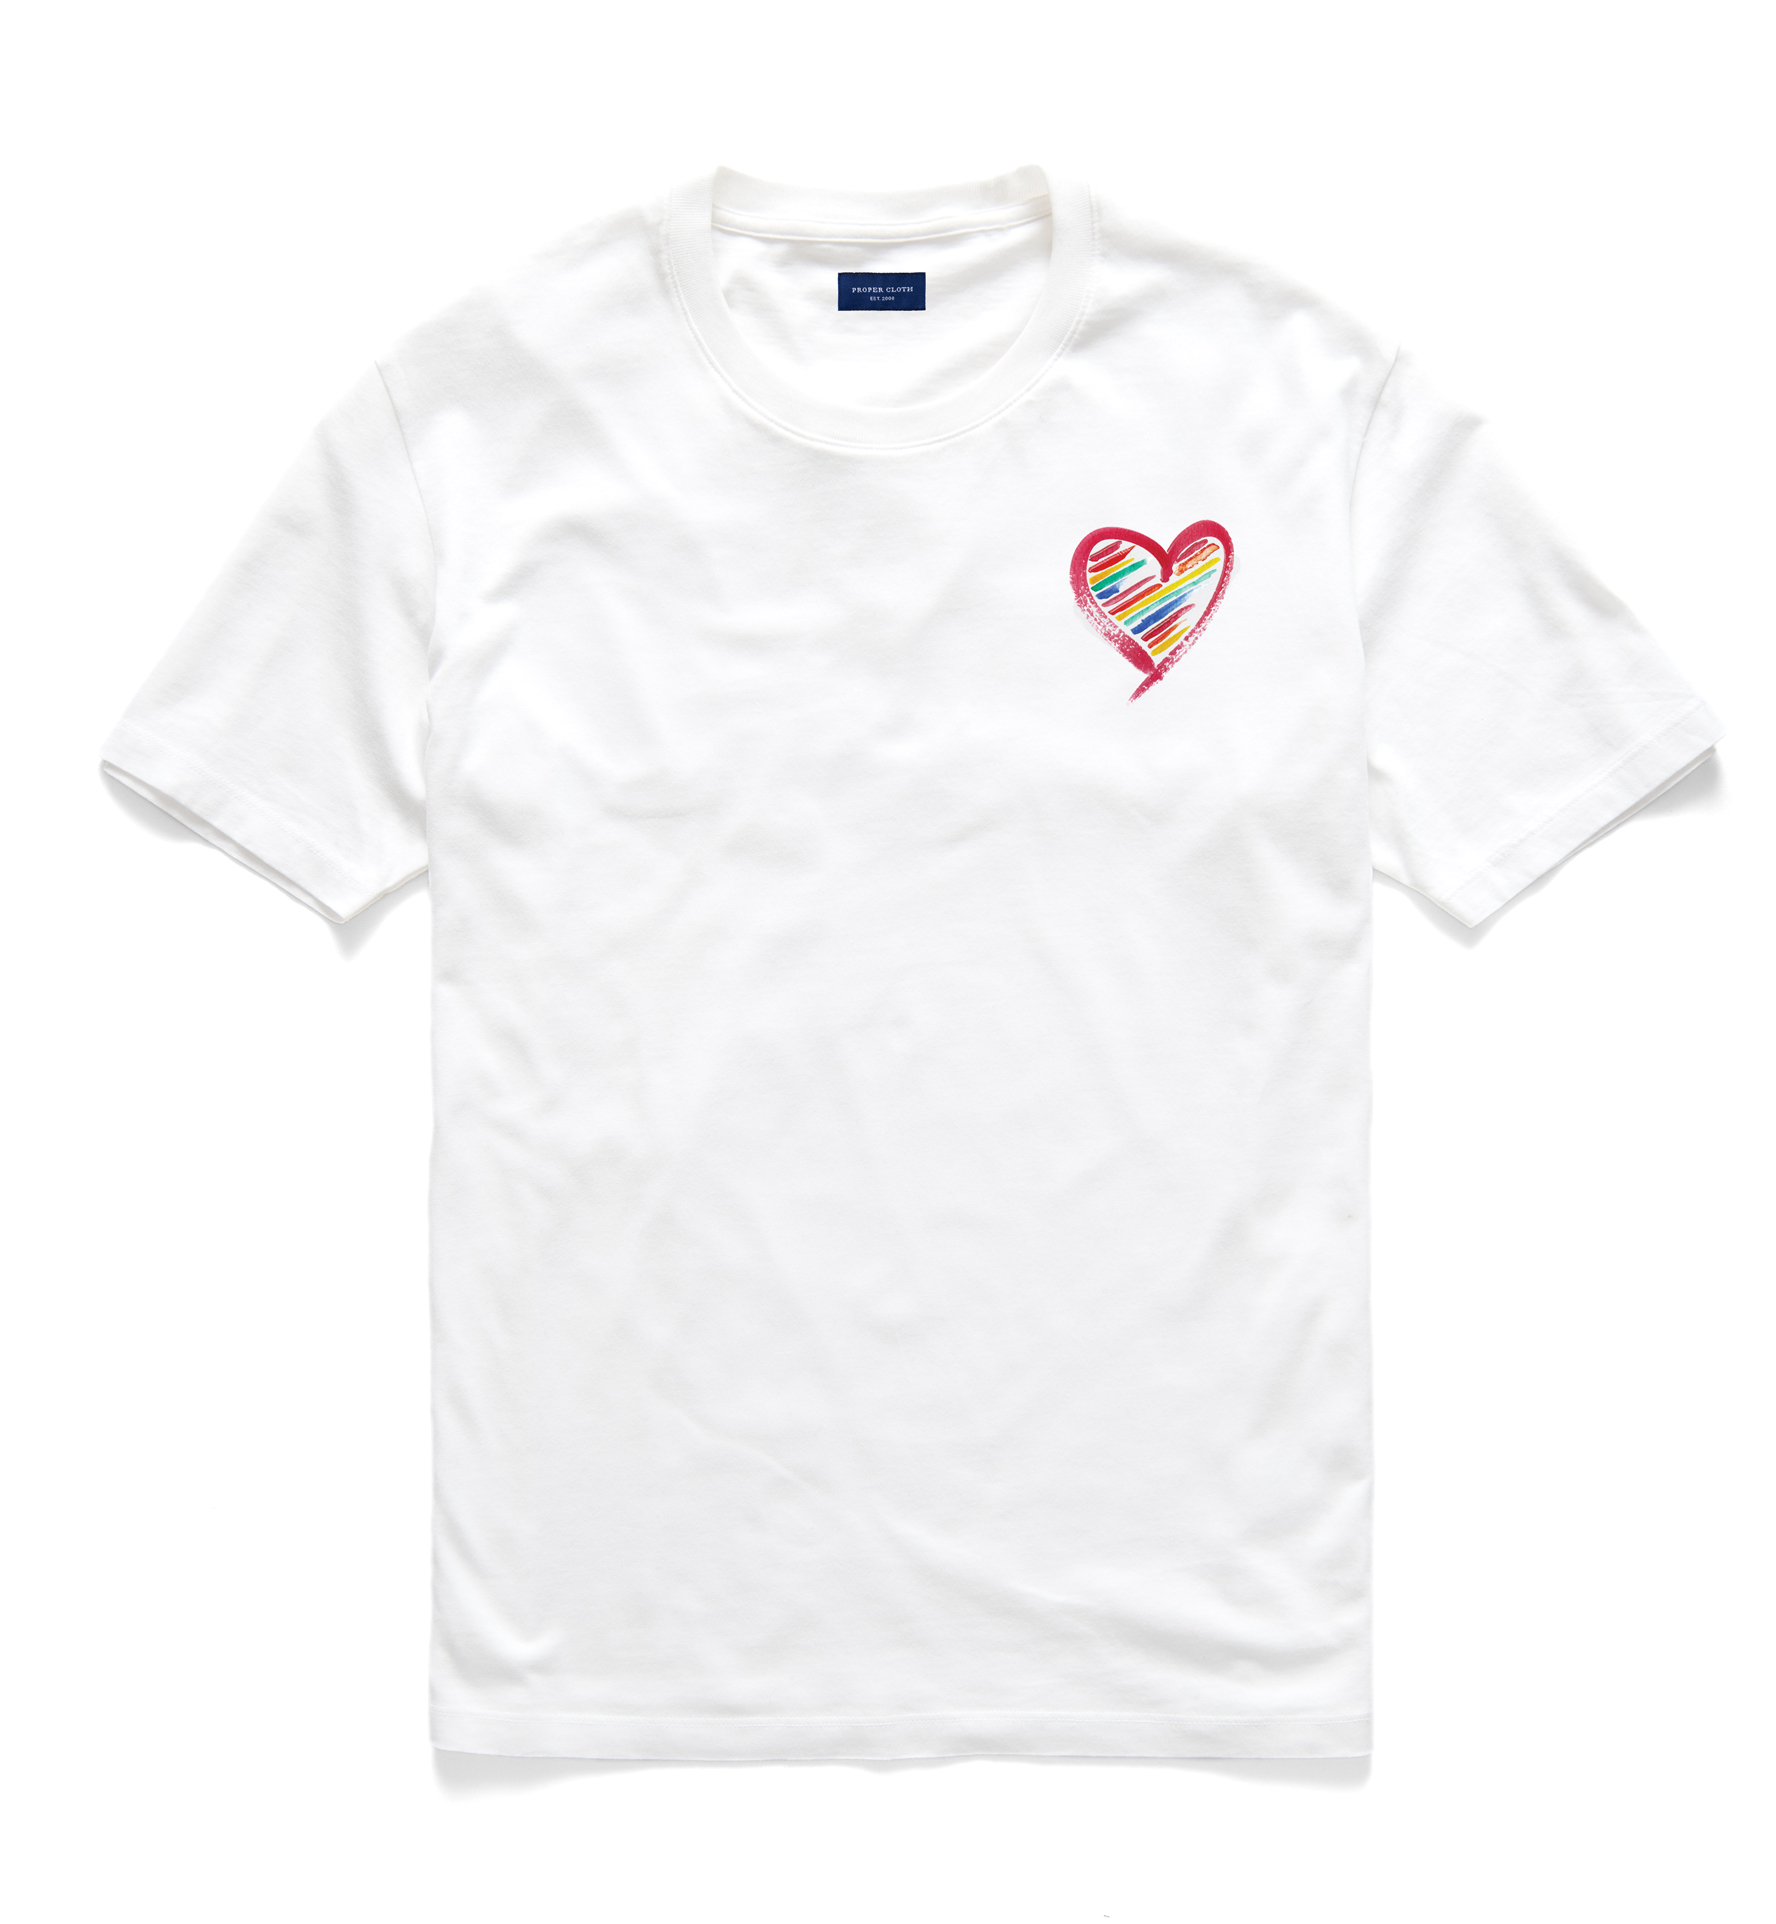 Zoom Image of Lightweight Cotton Pride Graphic T-Shirt